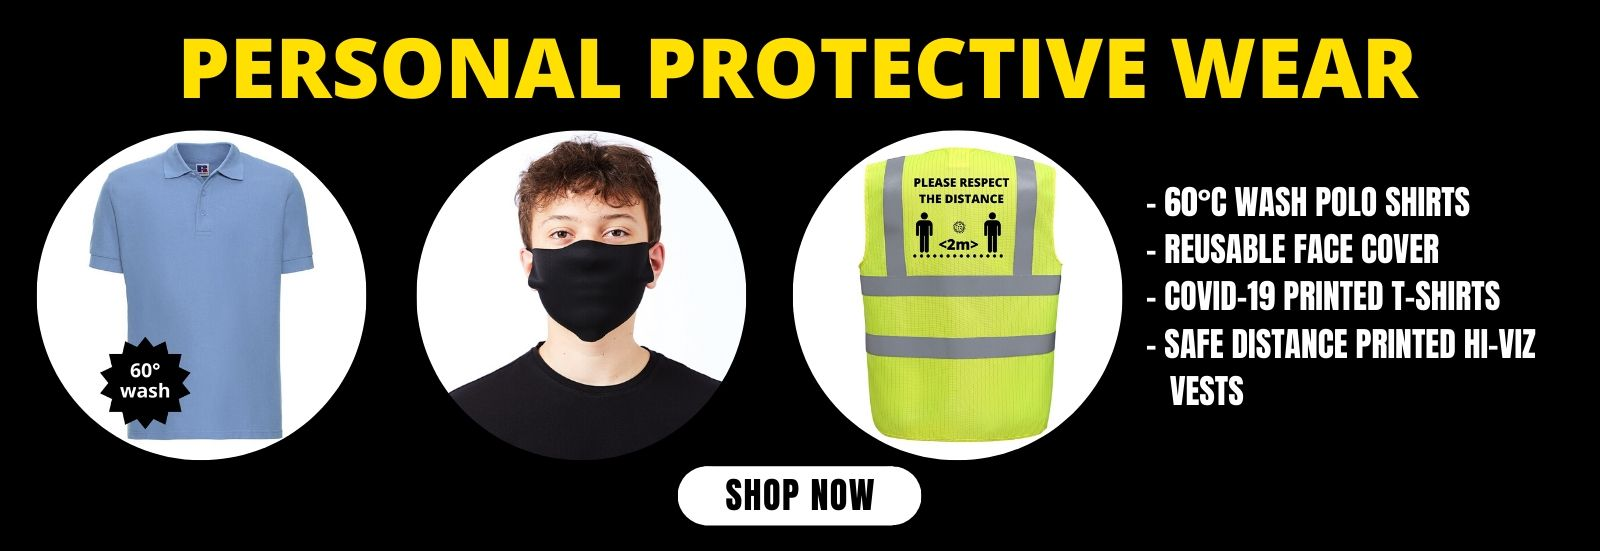 Personal protective wear